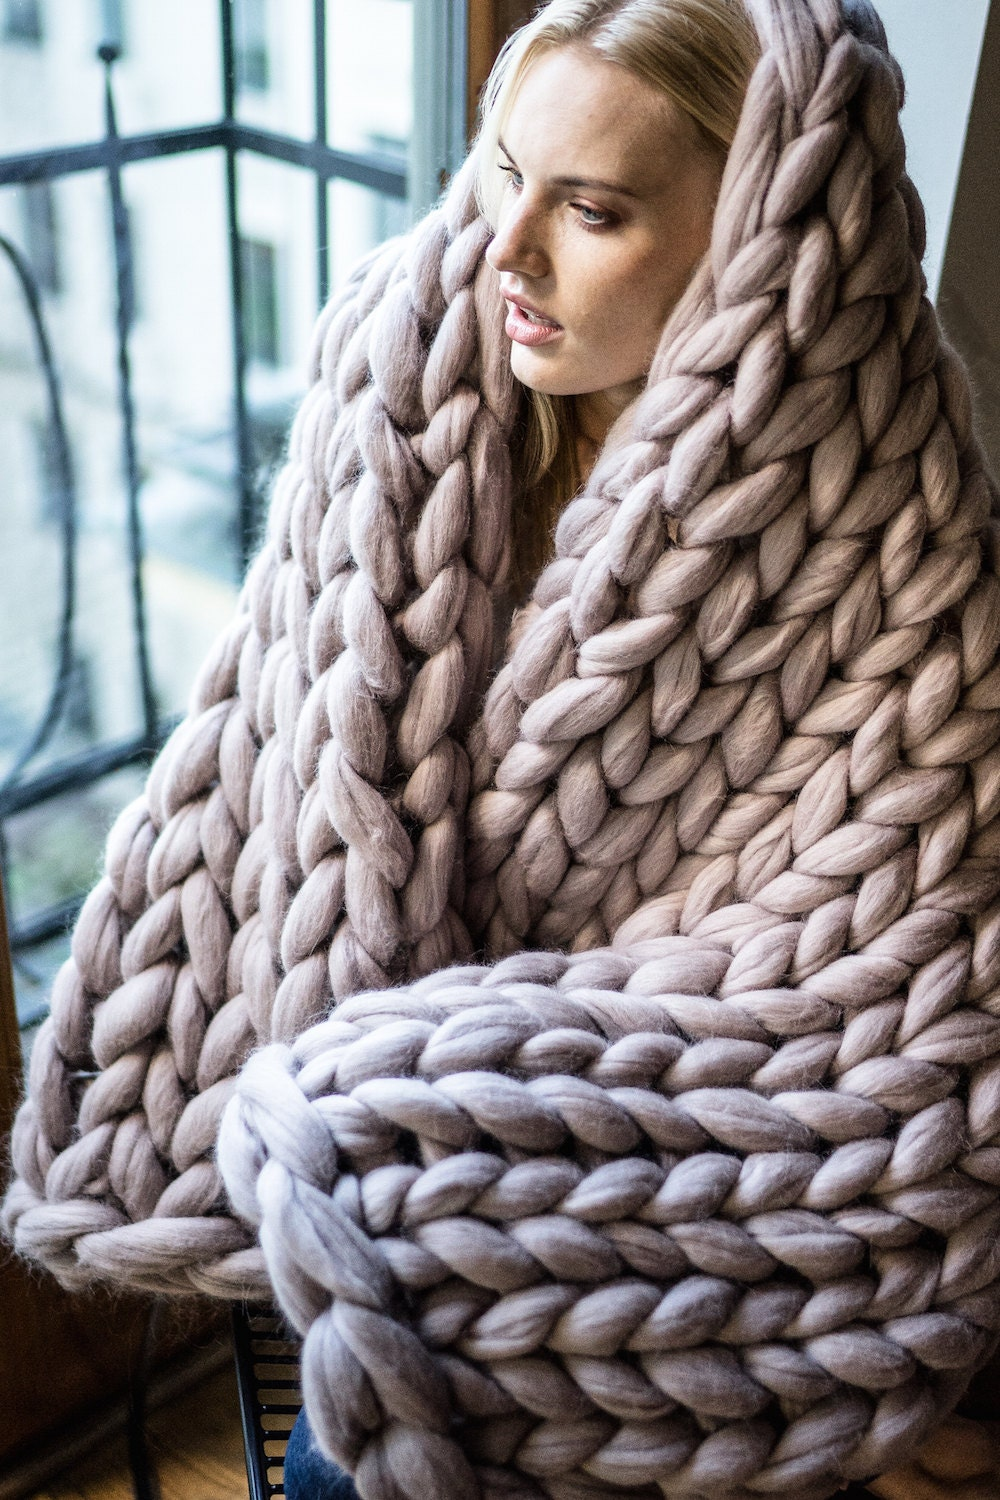 Giant Knitting Blankets : Chunky knit blanket giant yarn throw wrap arm from